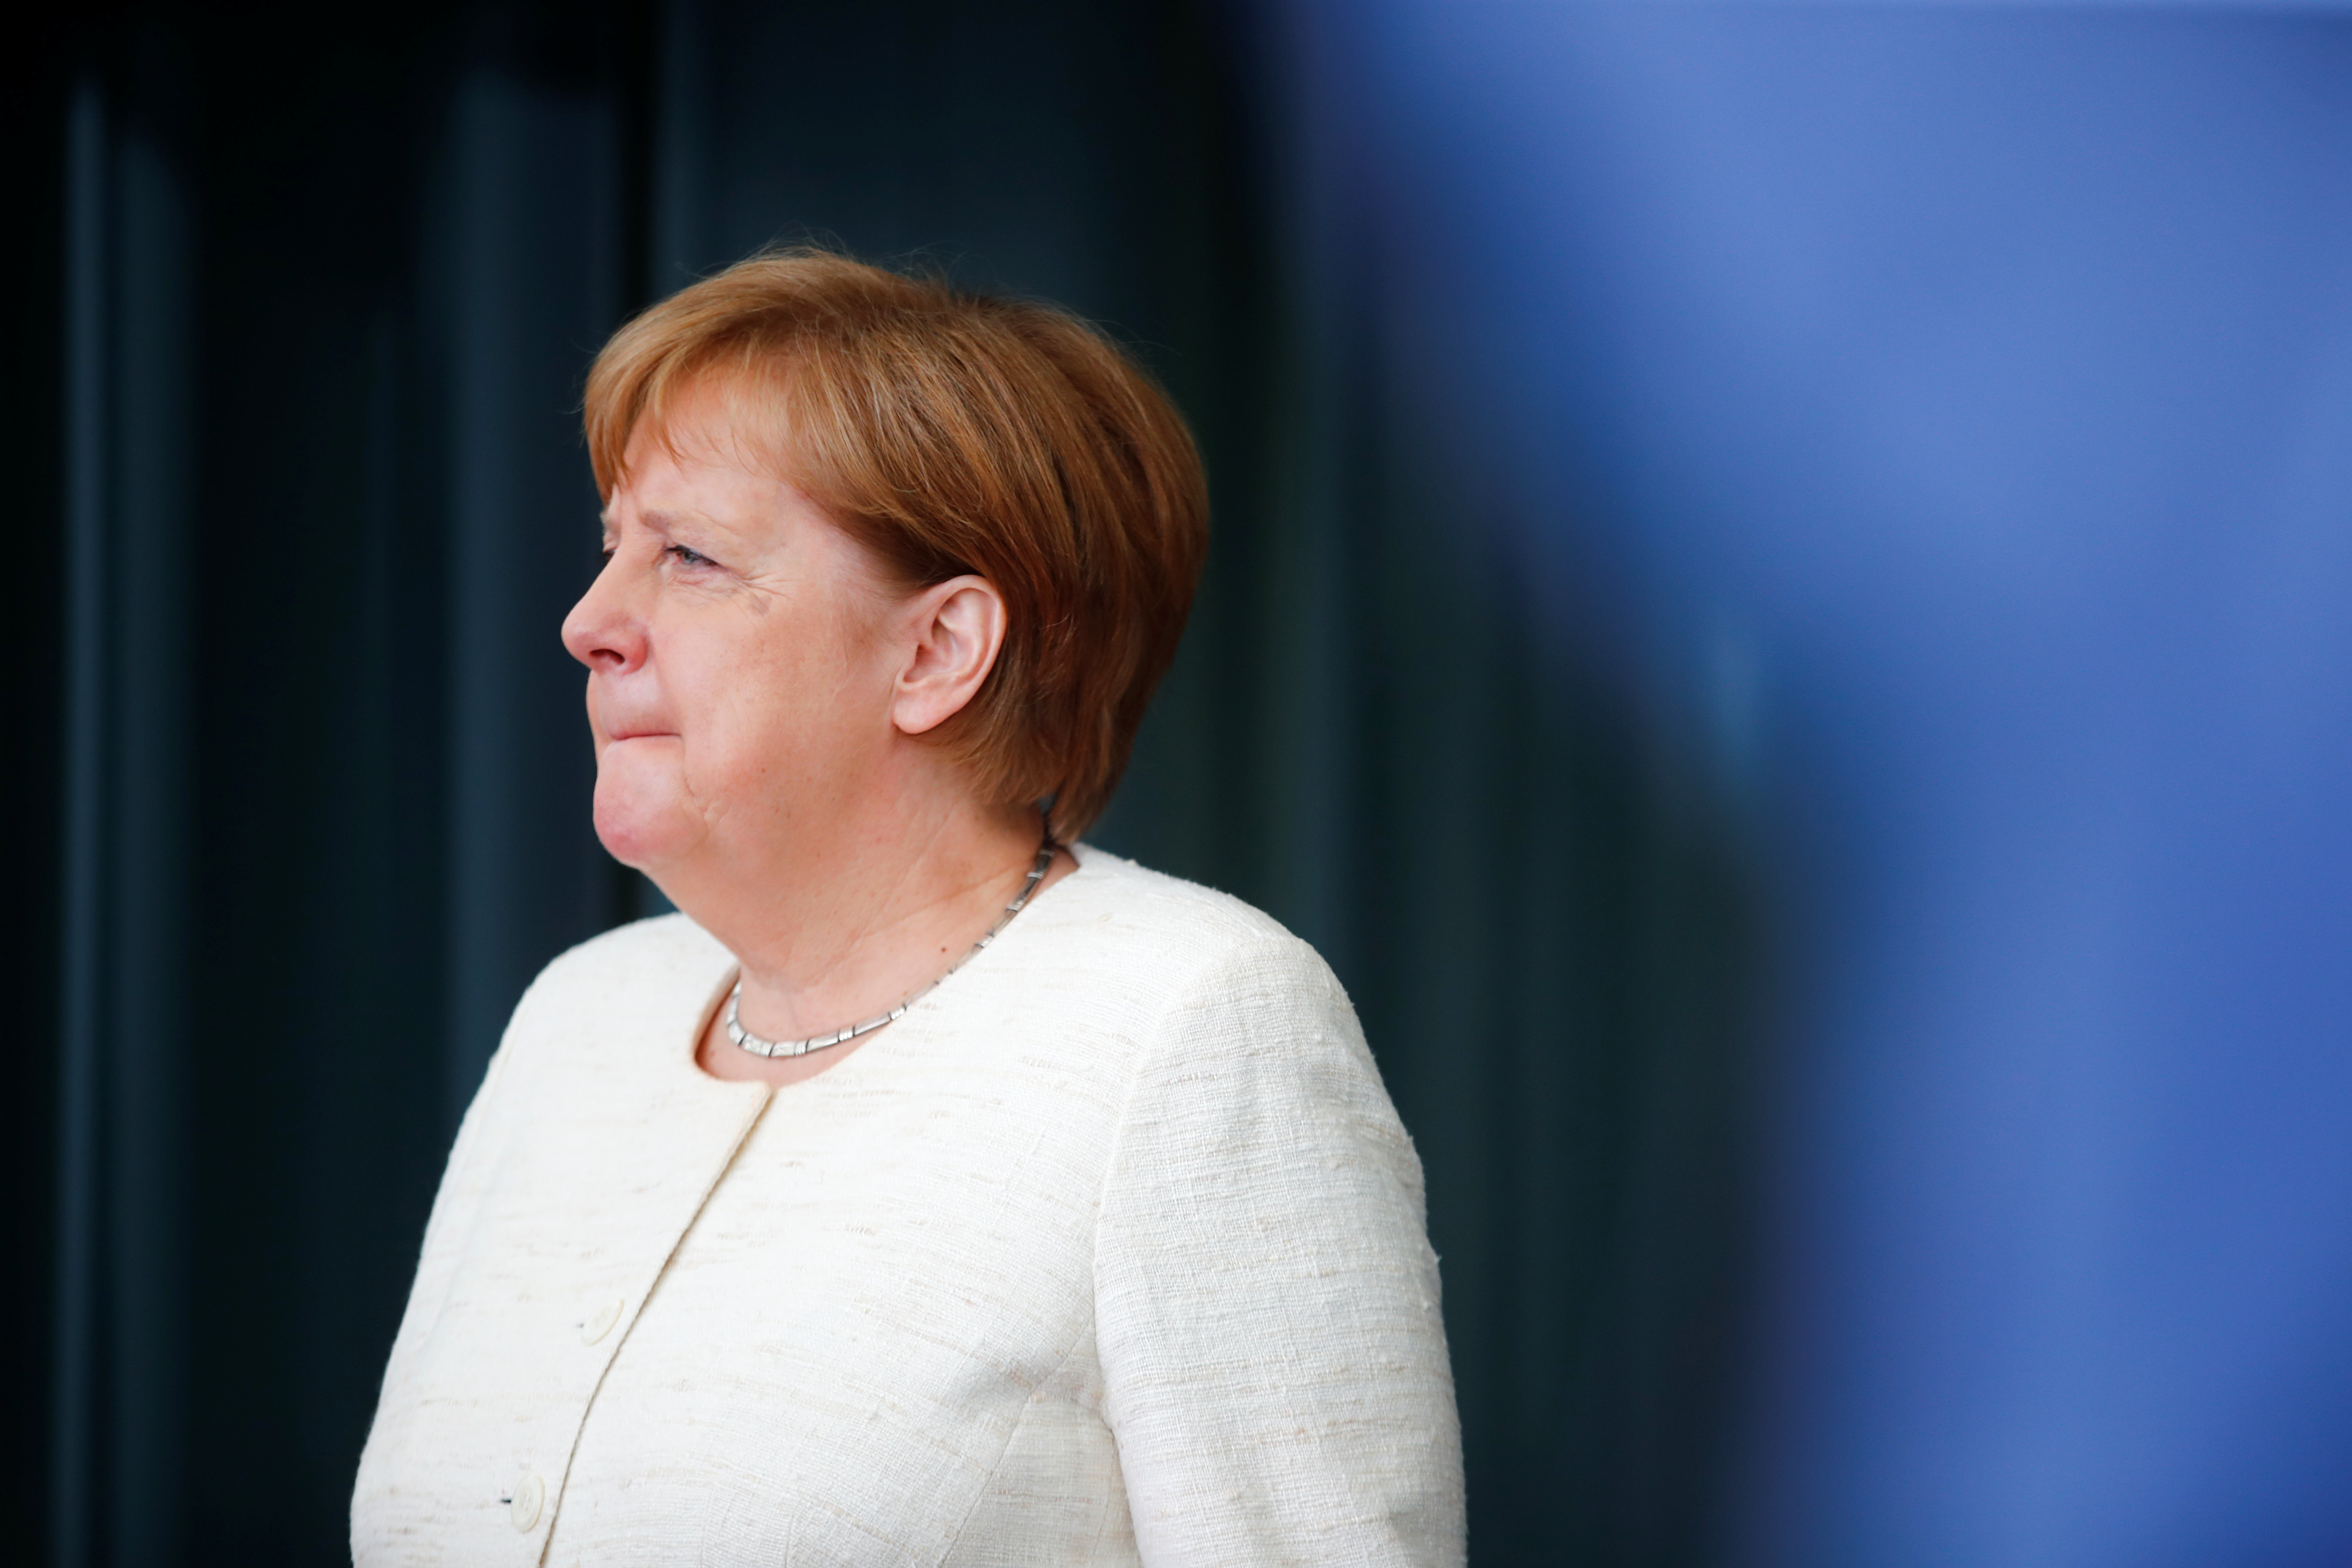 Is Germany going soft on China?